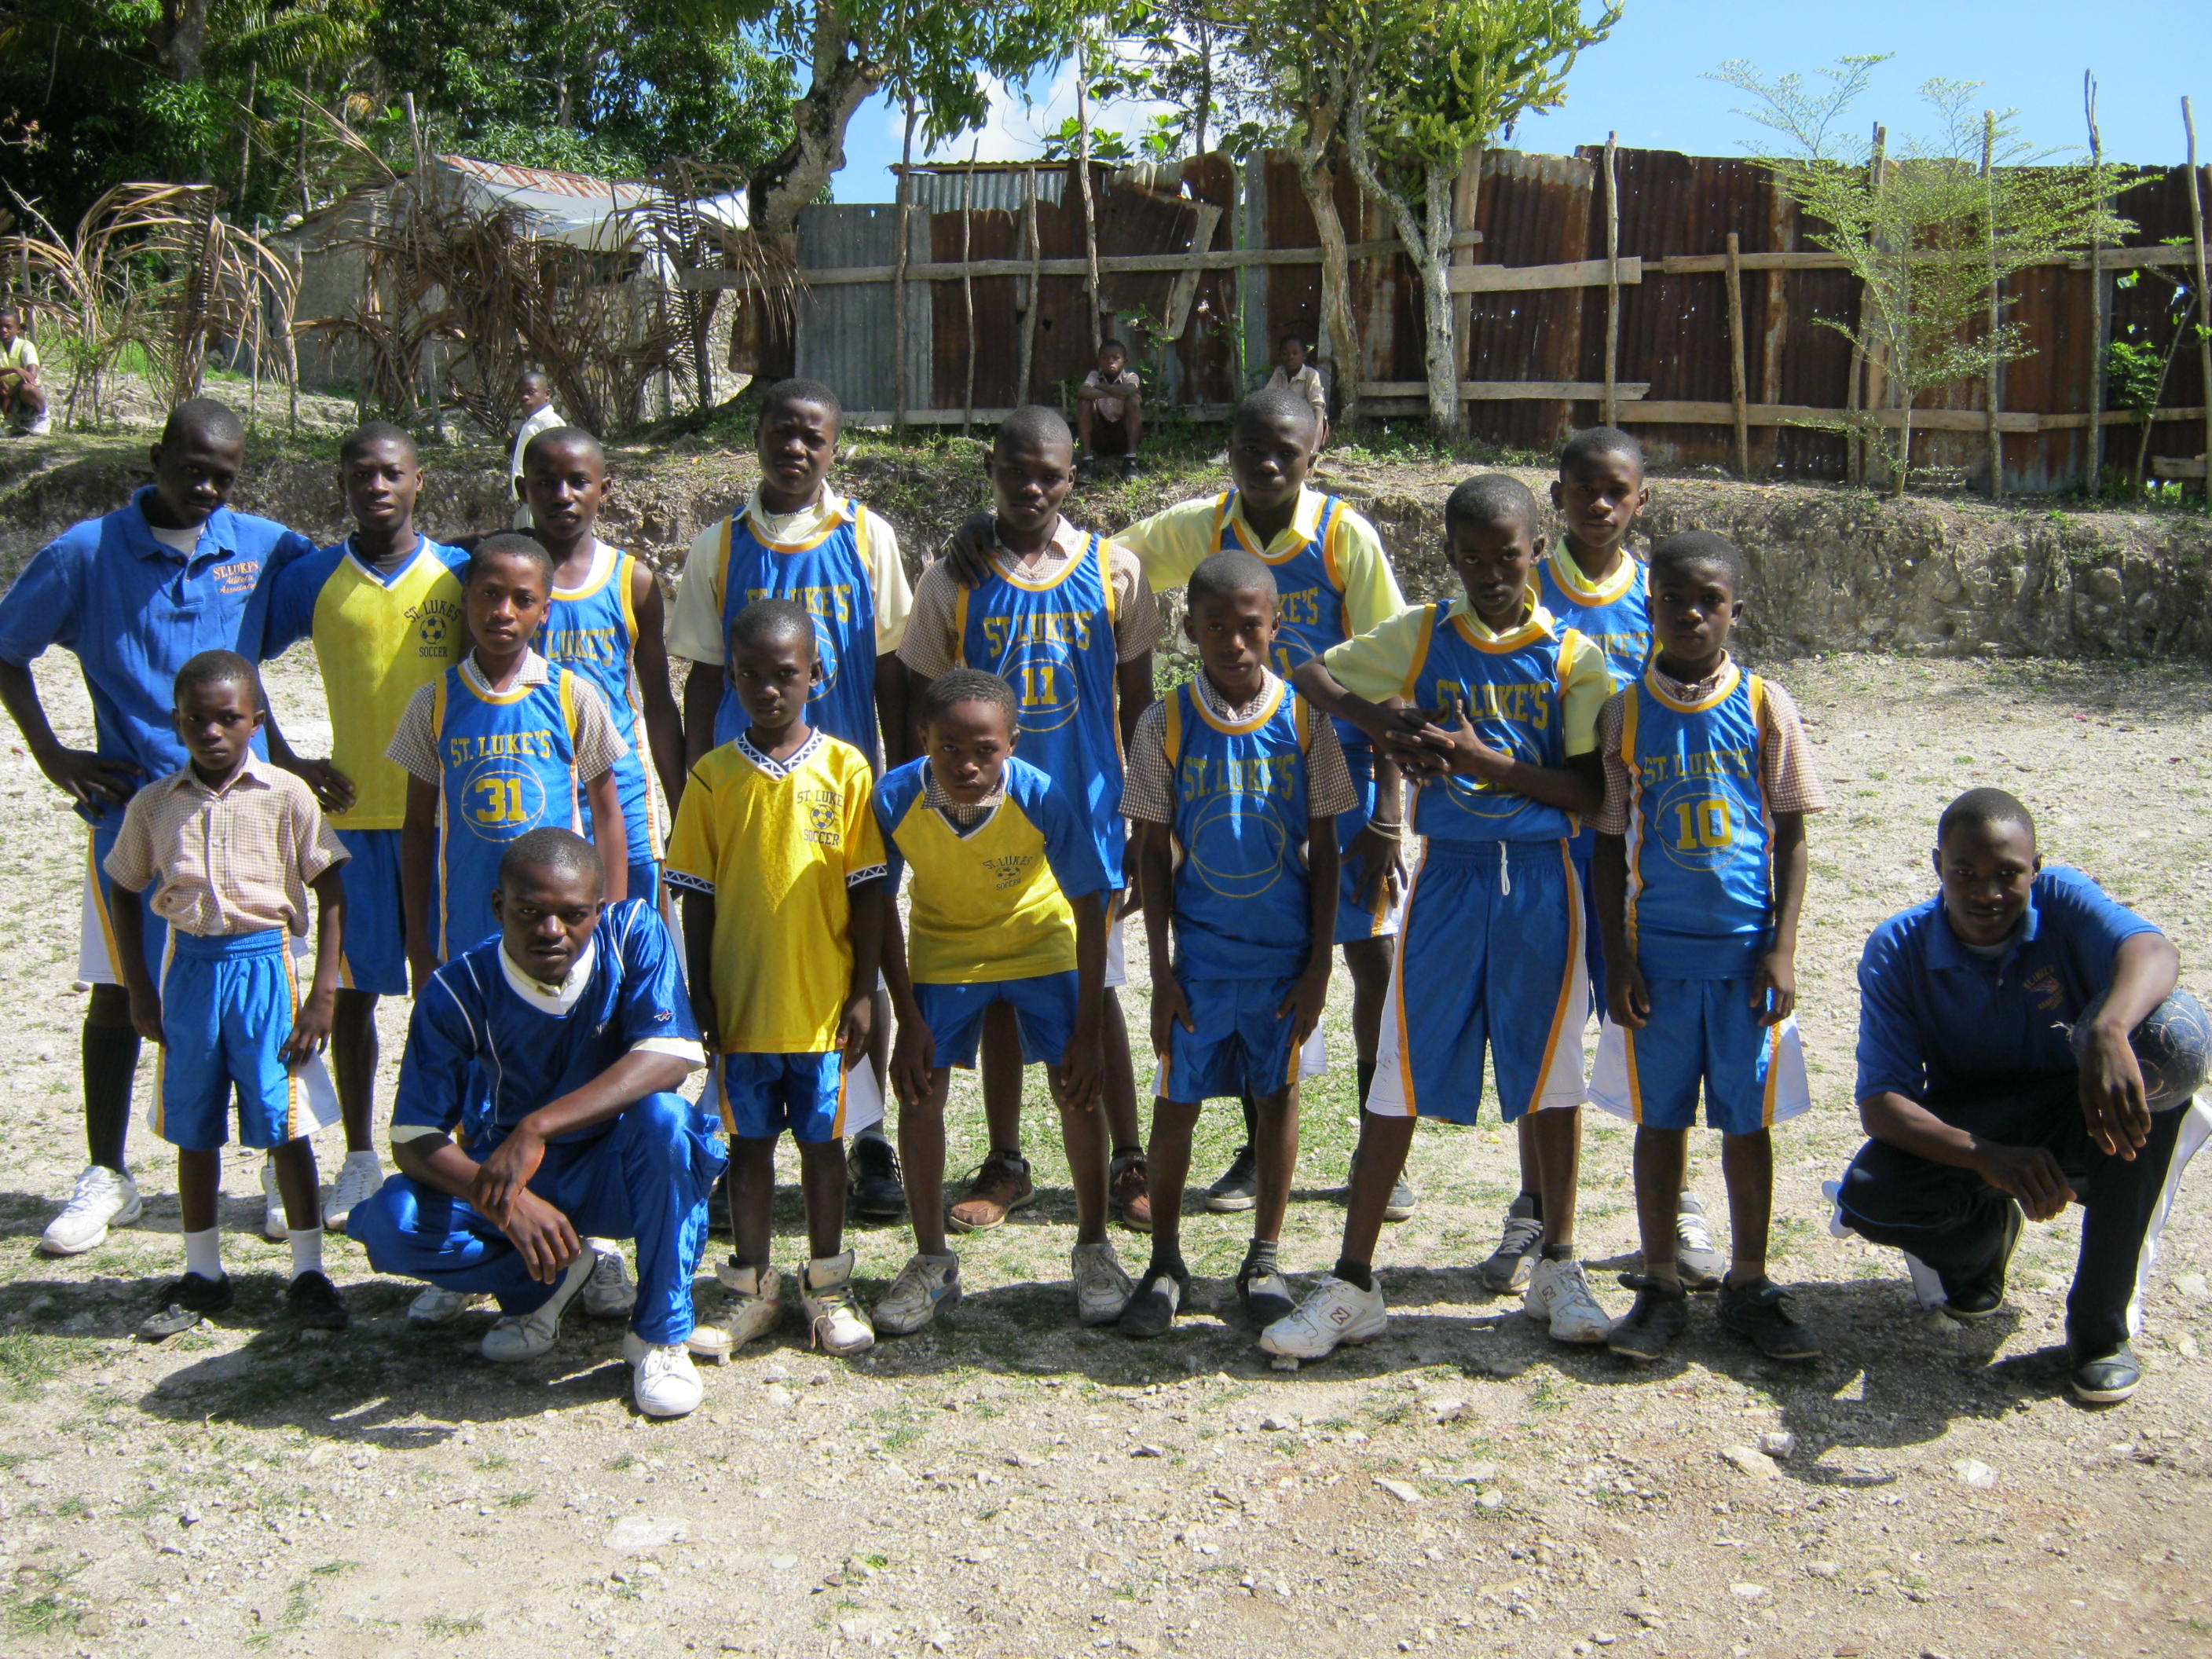 St. Luke Soccer team in Chardonnette